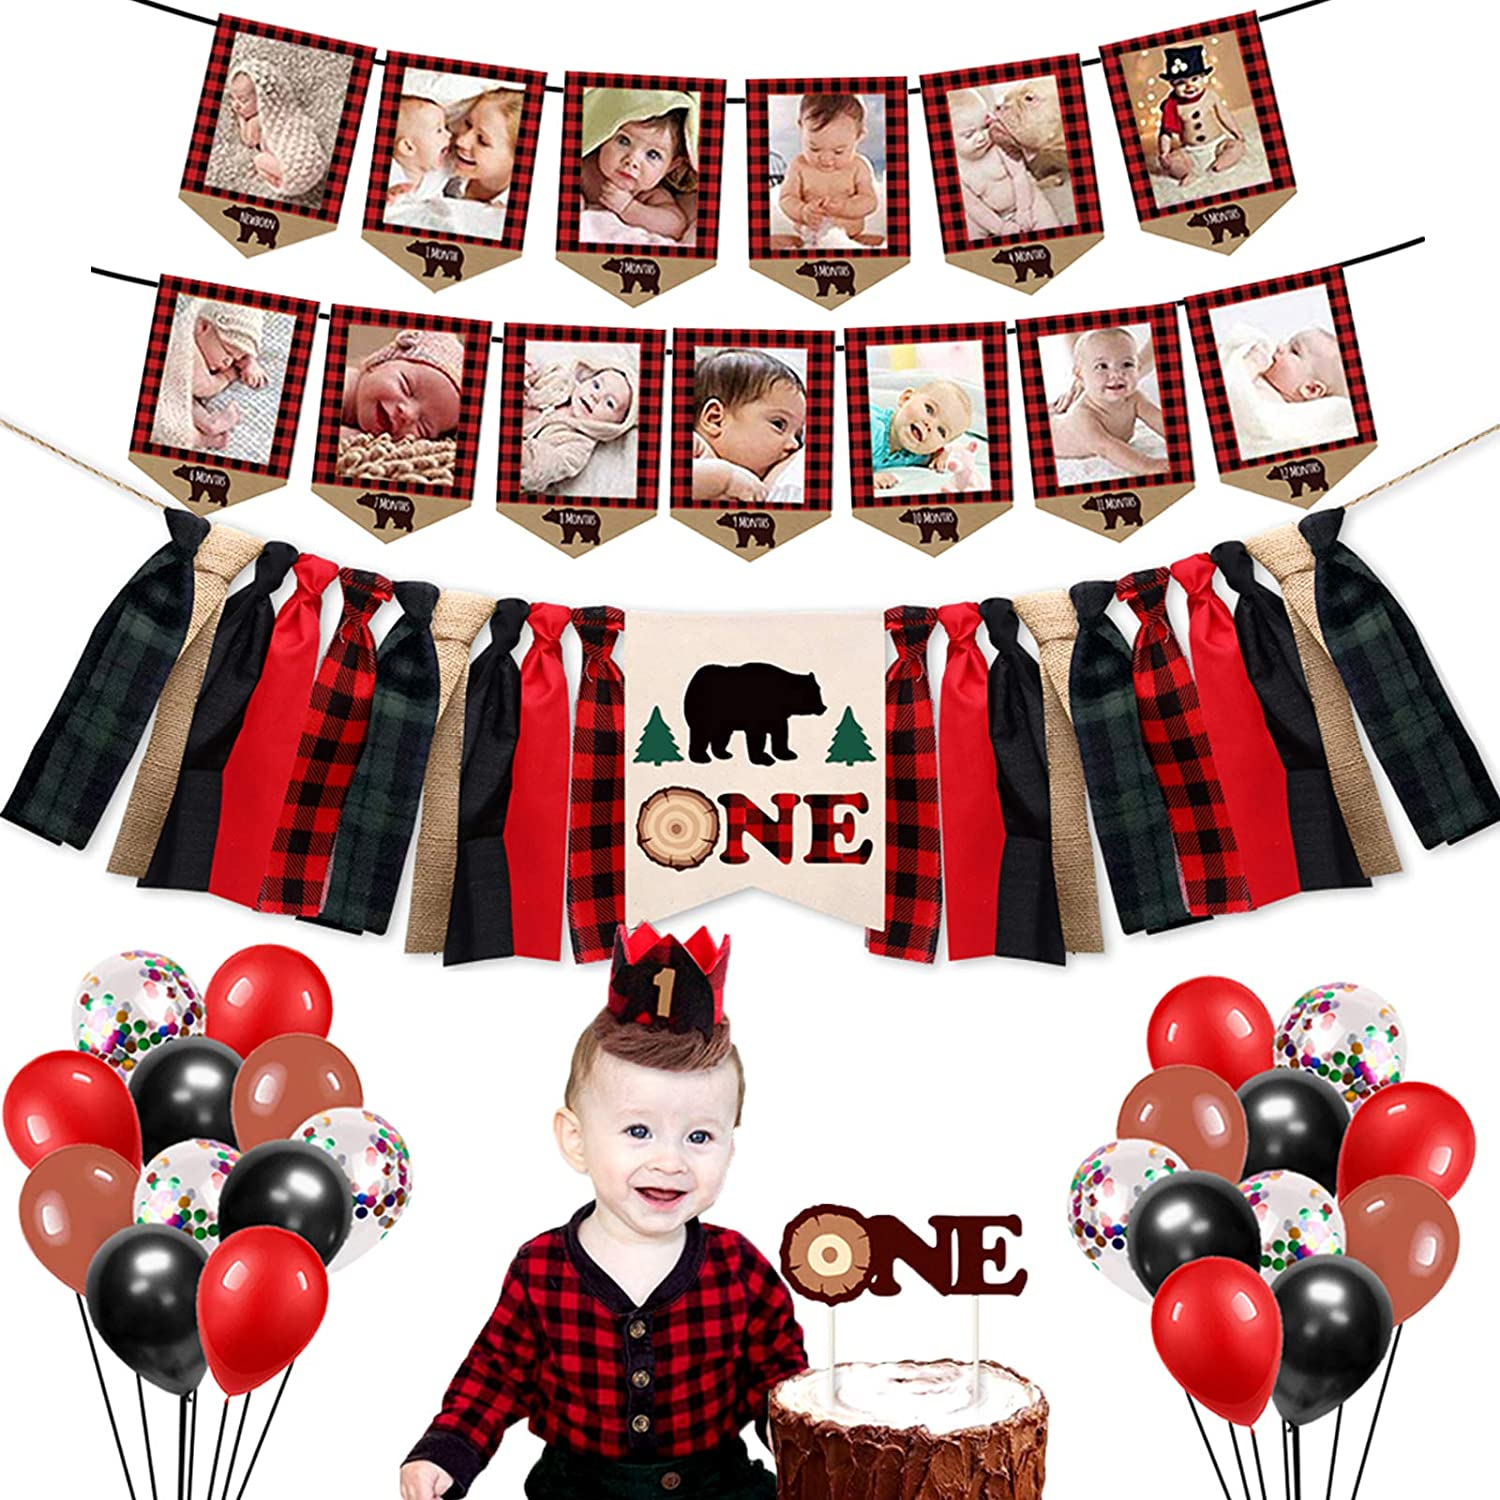 """Lumberjack First Birthday Party Supplies Decorations - Buffalo Plaid Rustic Hunter High Chair Banner, Wild Bear Monthly Photo Banners, Camping Bear Cake Topper, Woodland One Crown, 12"""" Latex Balloons"""